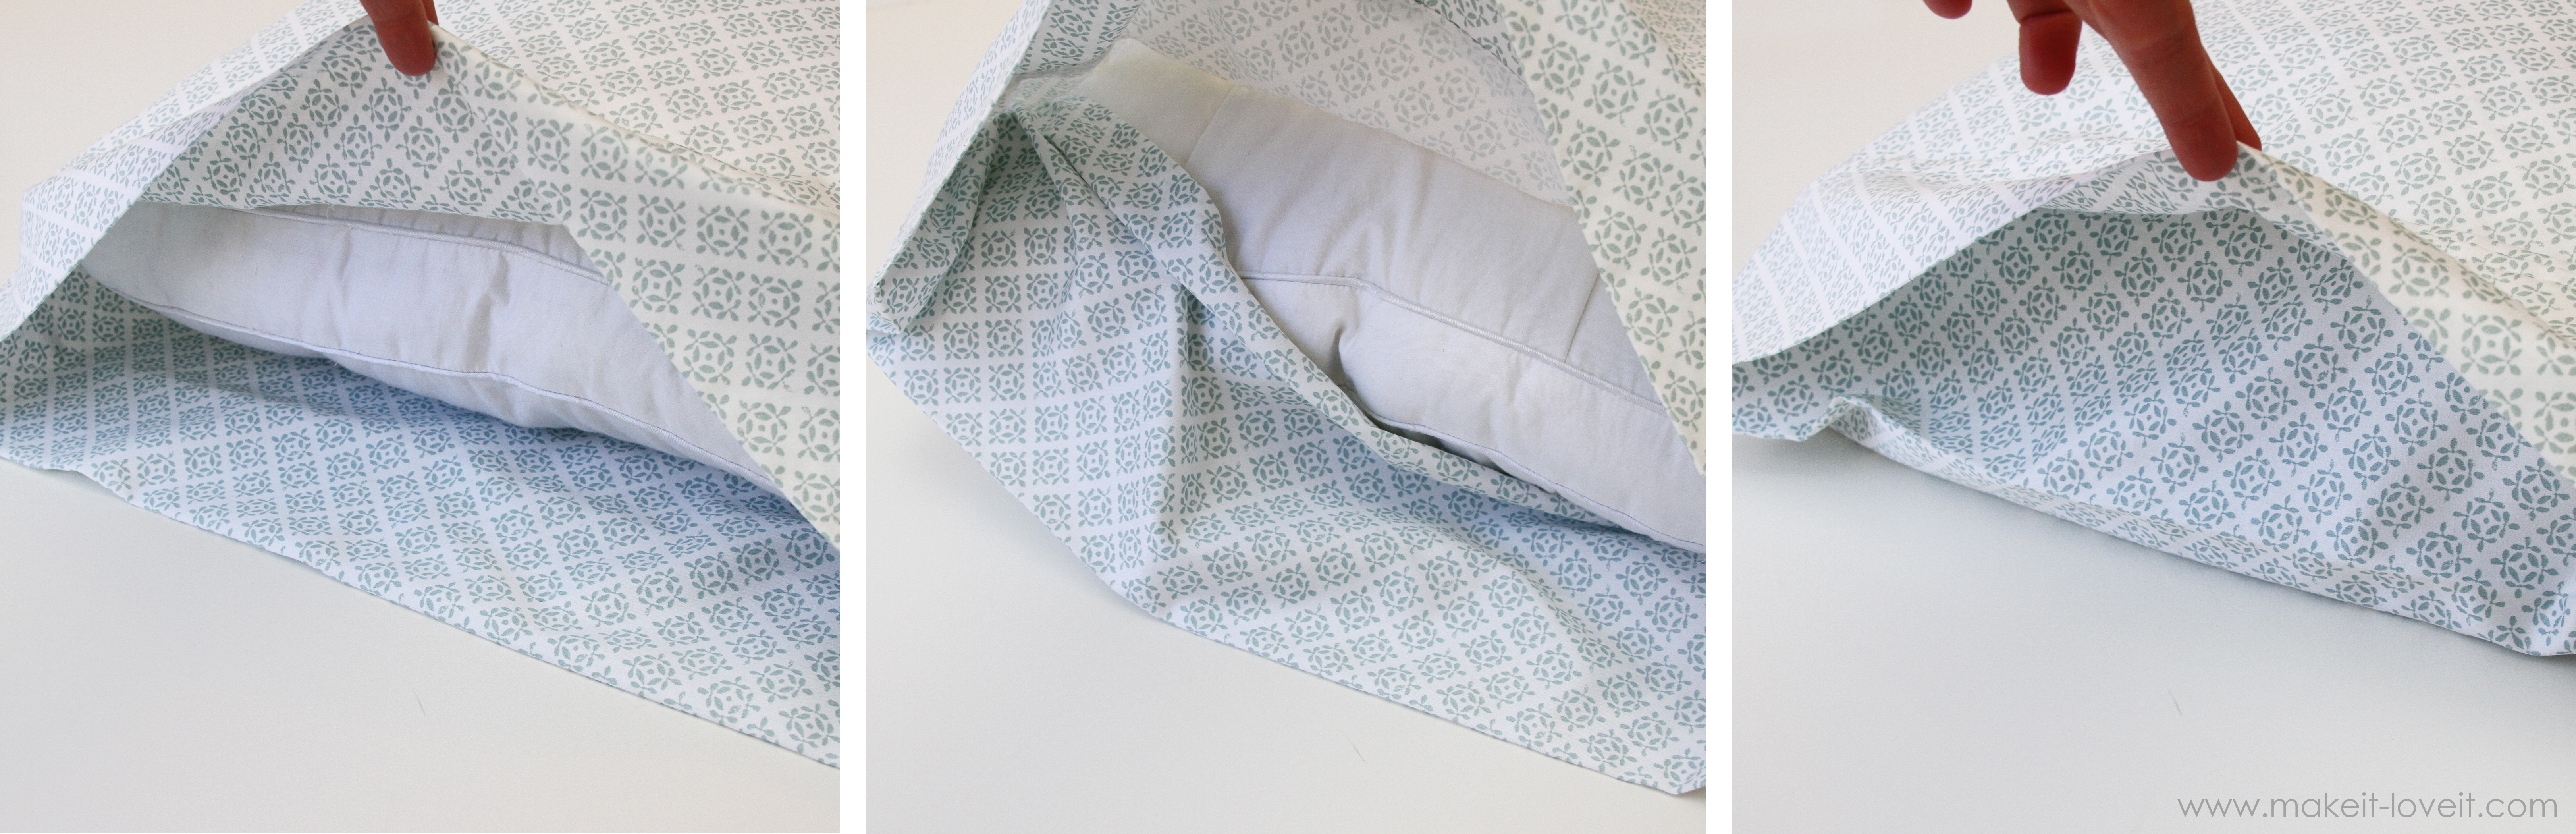 Envelope Closure Pillowcase For Bed Pillows Make It